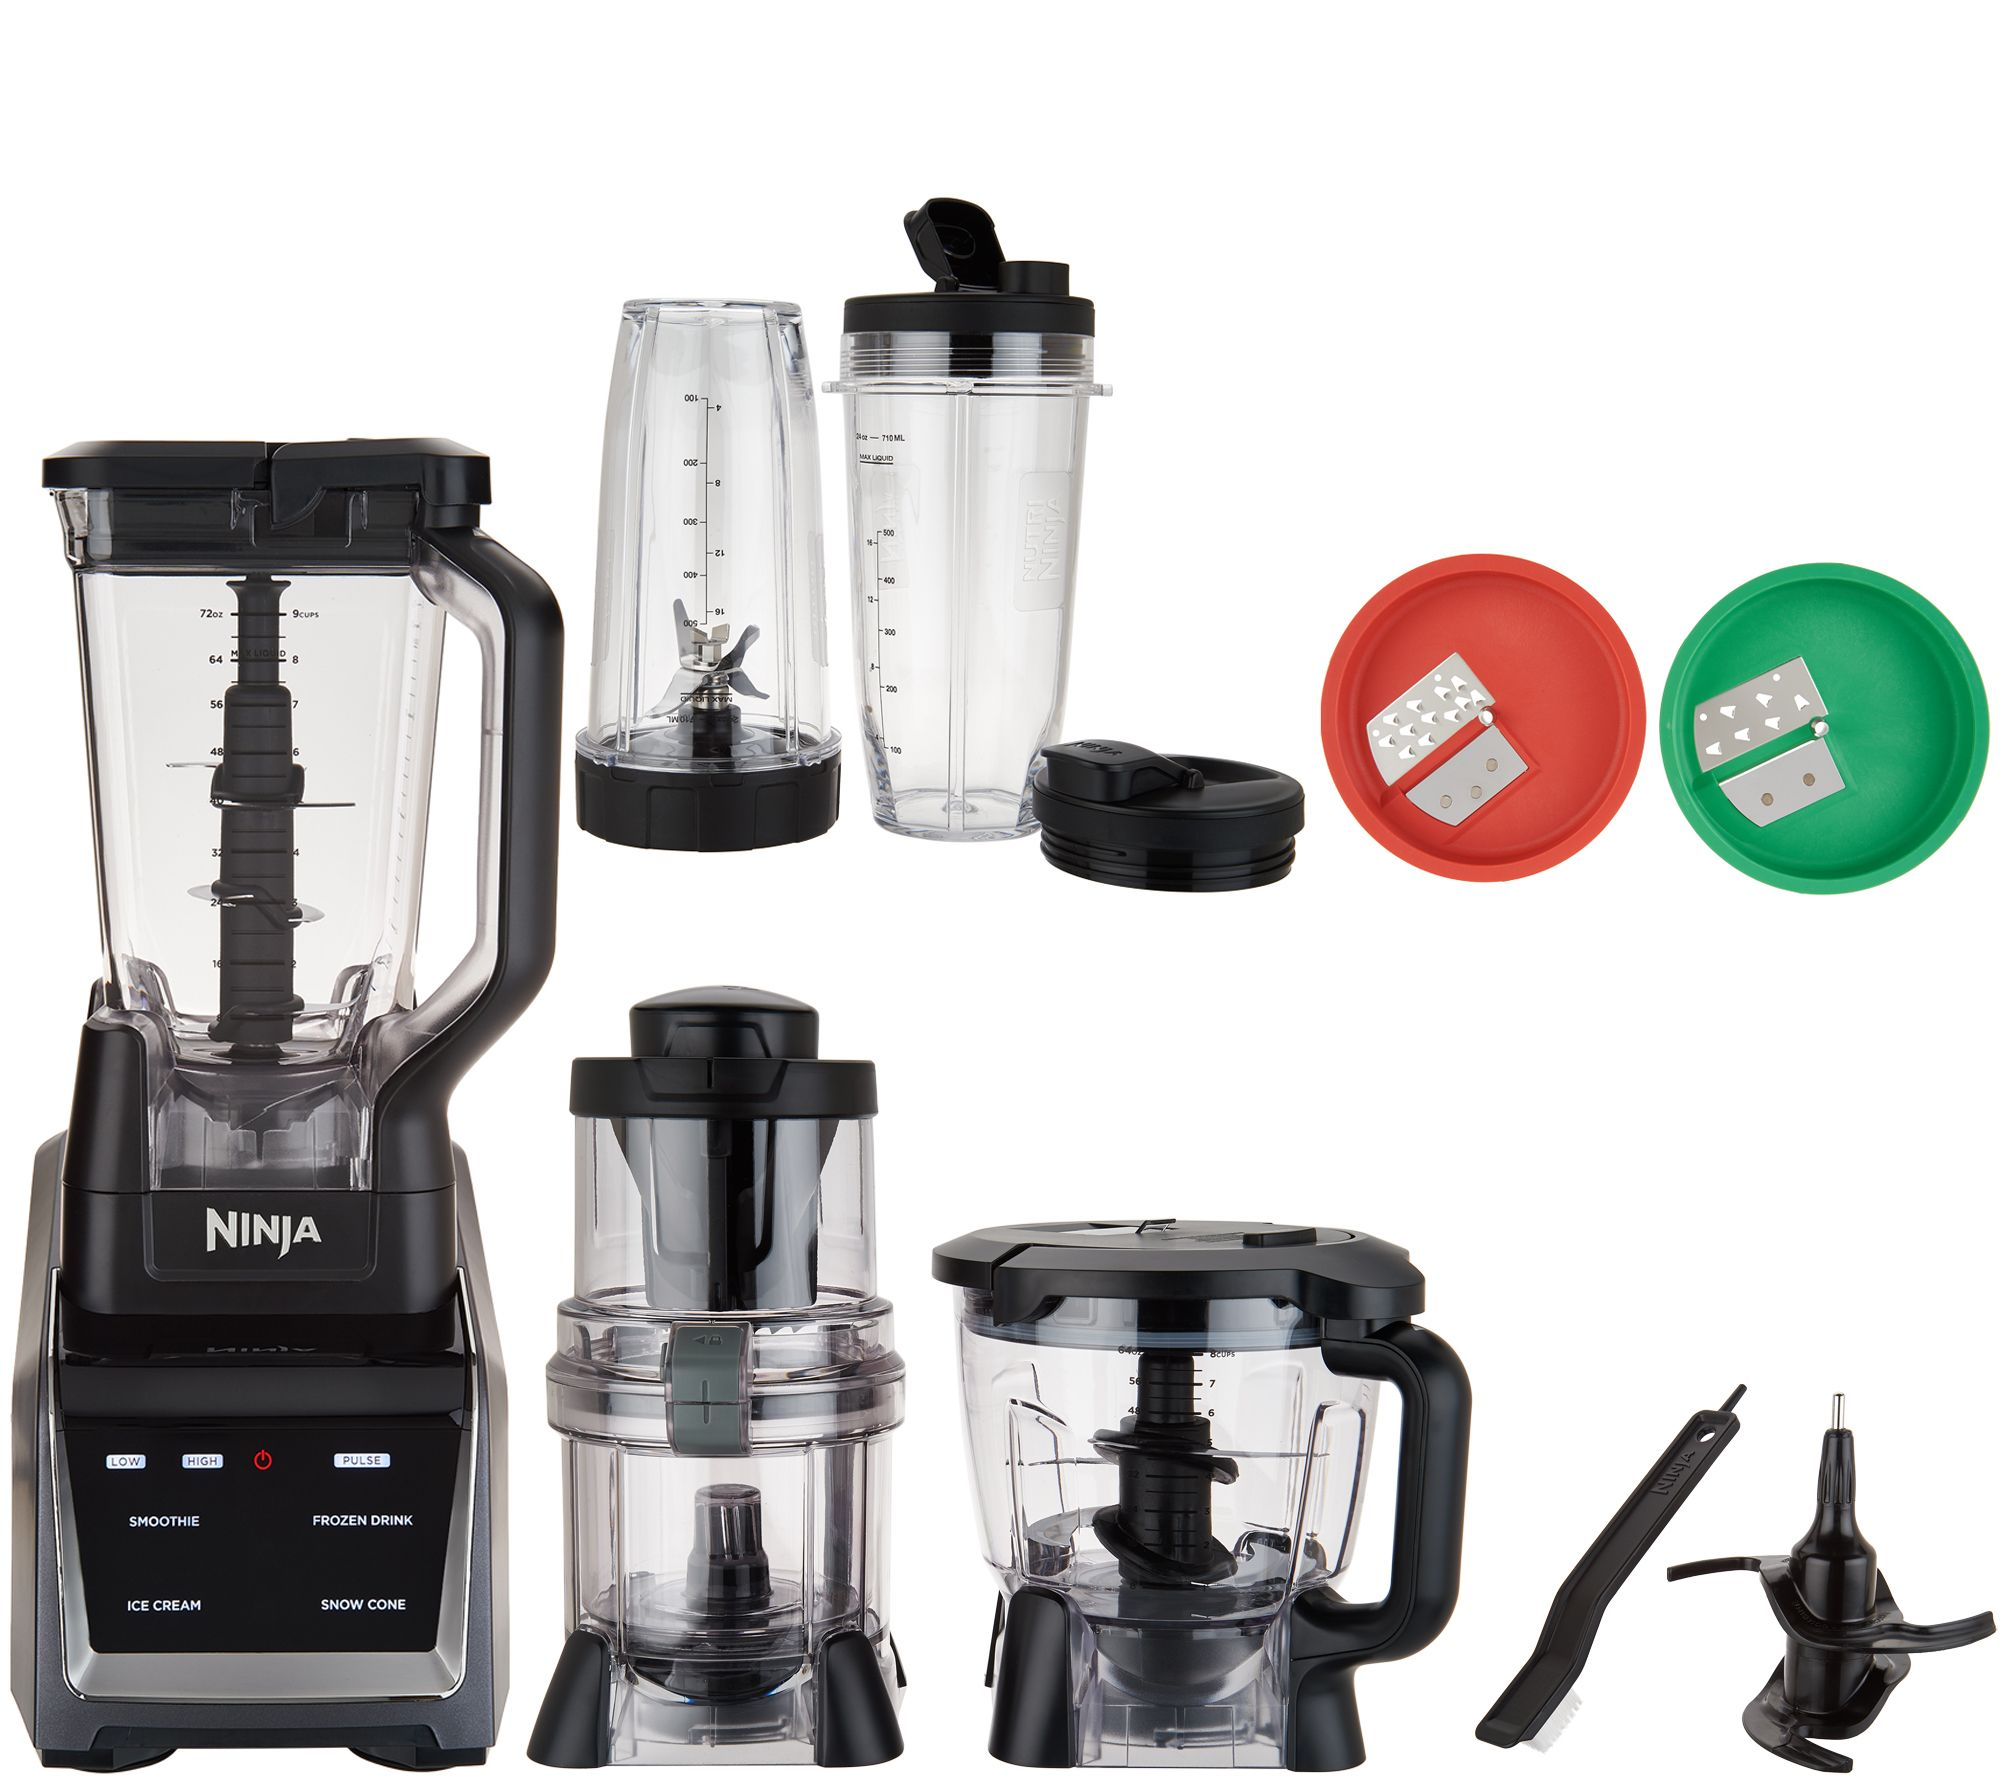 iq auto c com qvc system kitchen accessories w ninja in blenders food professional n systems